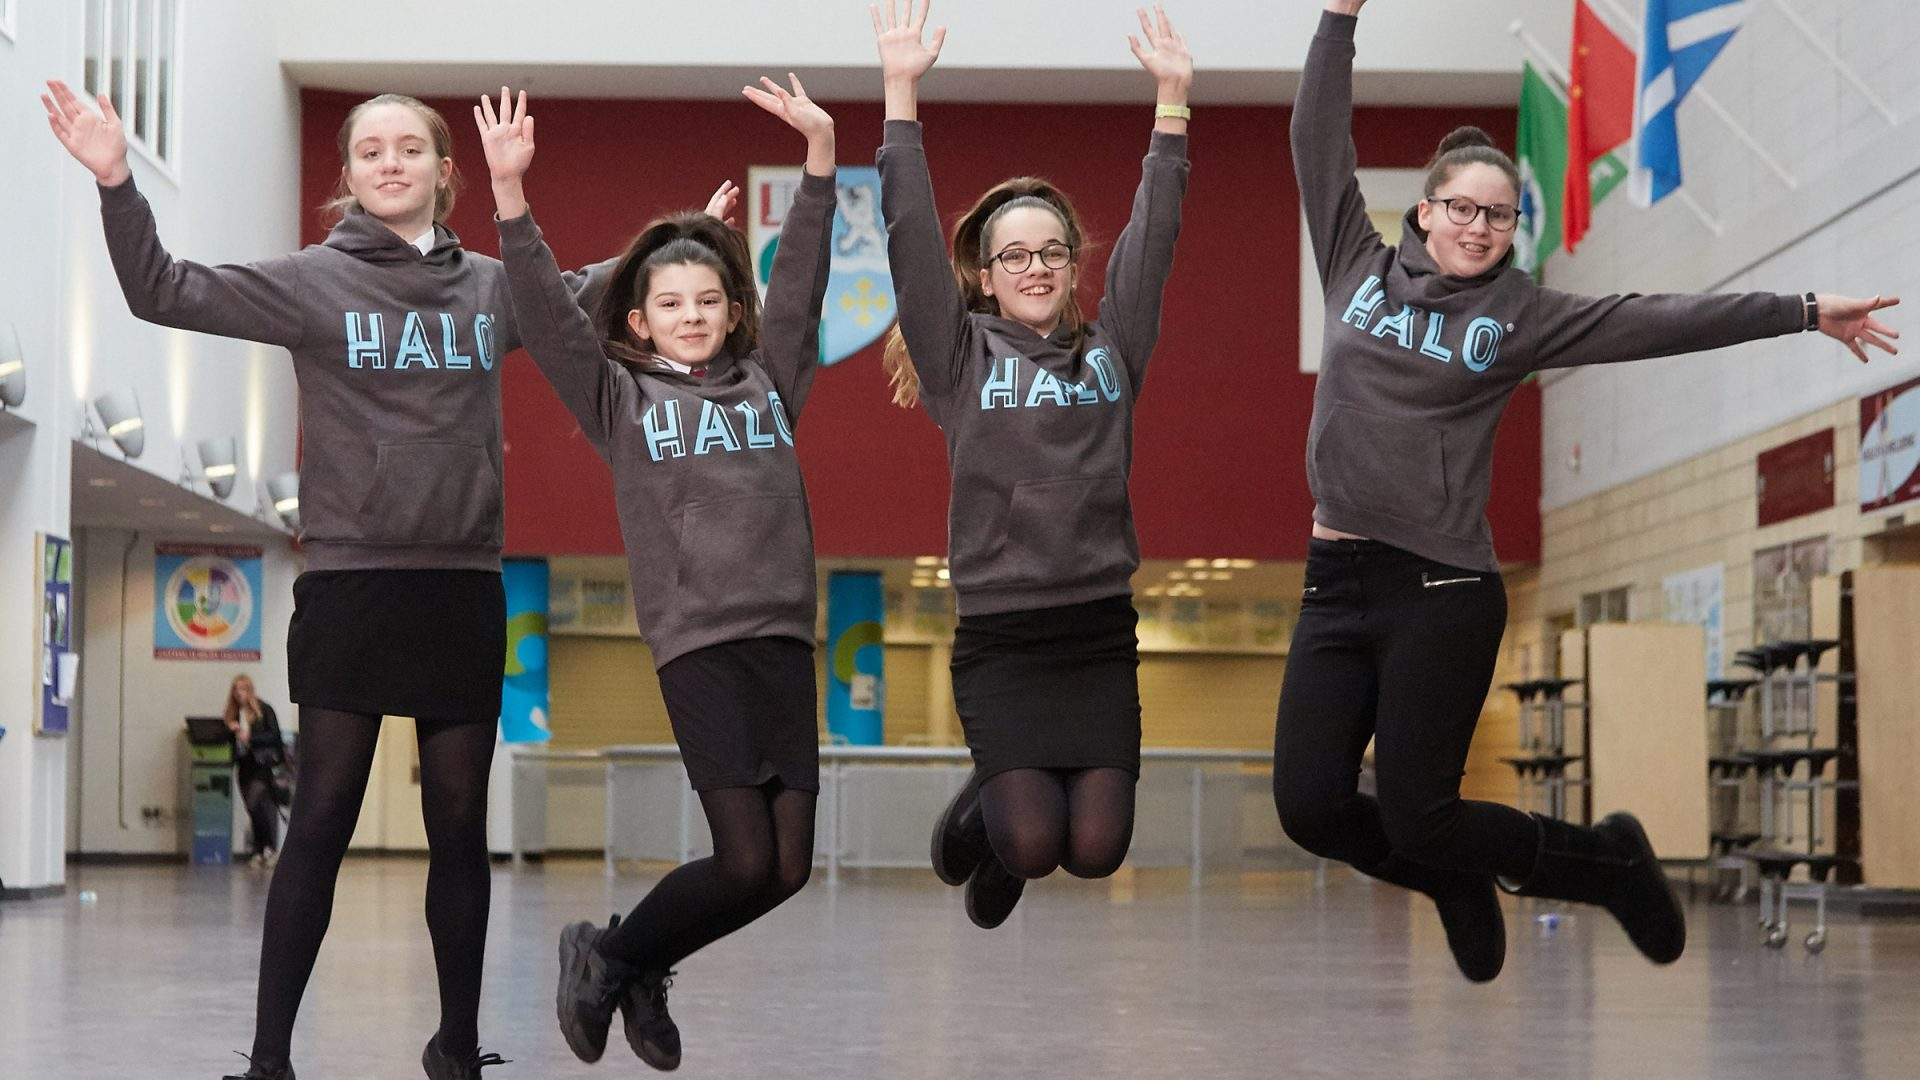 The HALO backs Scotland's CyberFirst Girls